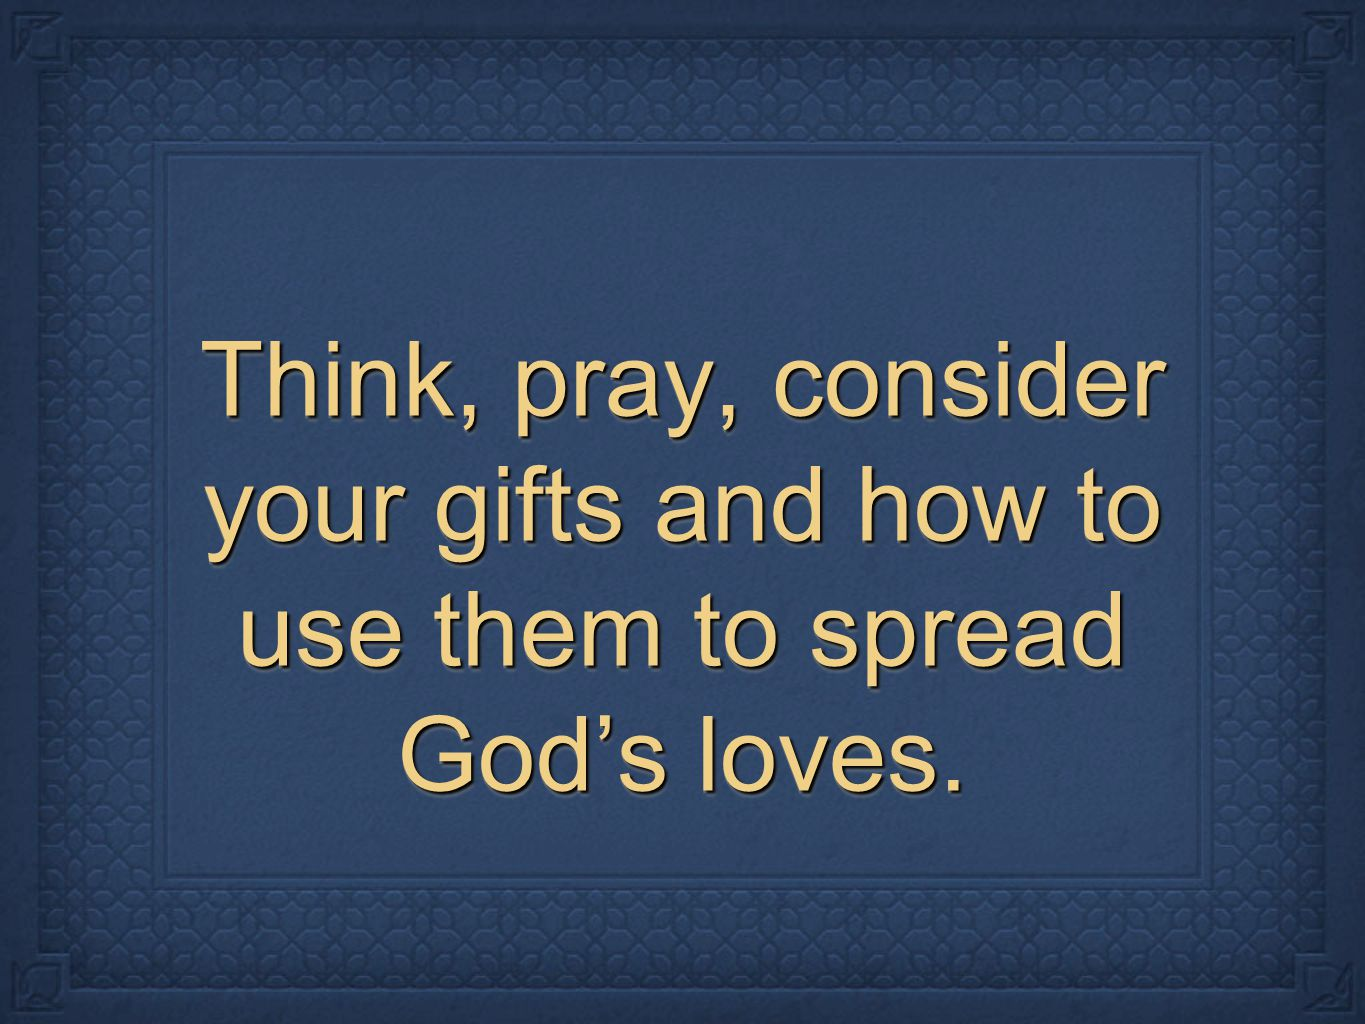 Think, pray, consider your gifts and how to use them to spread God's loves.